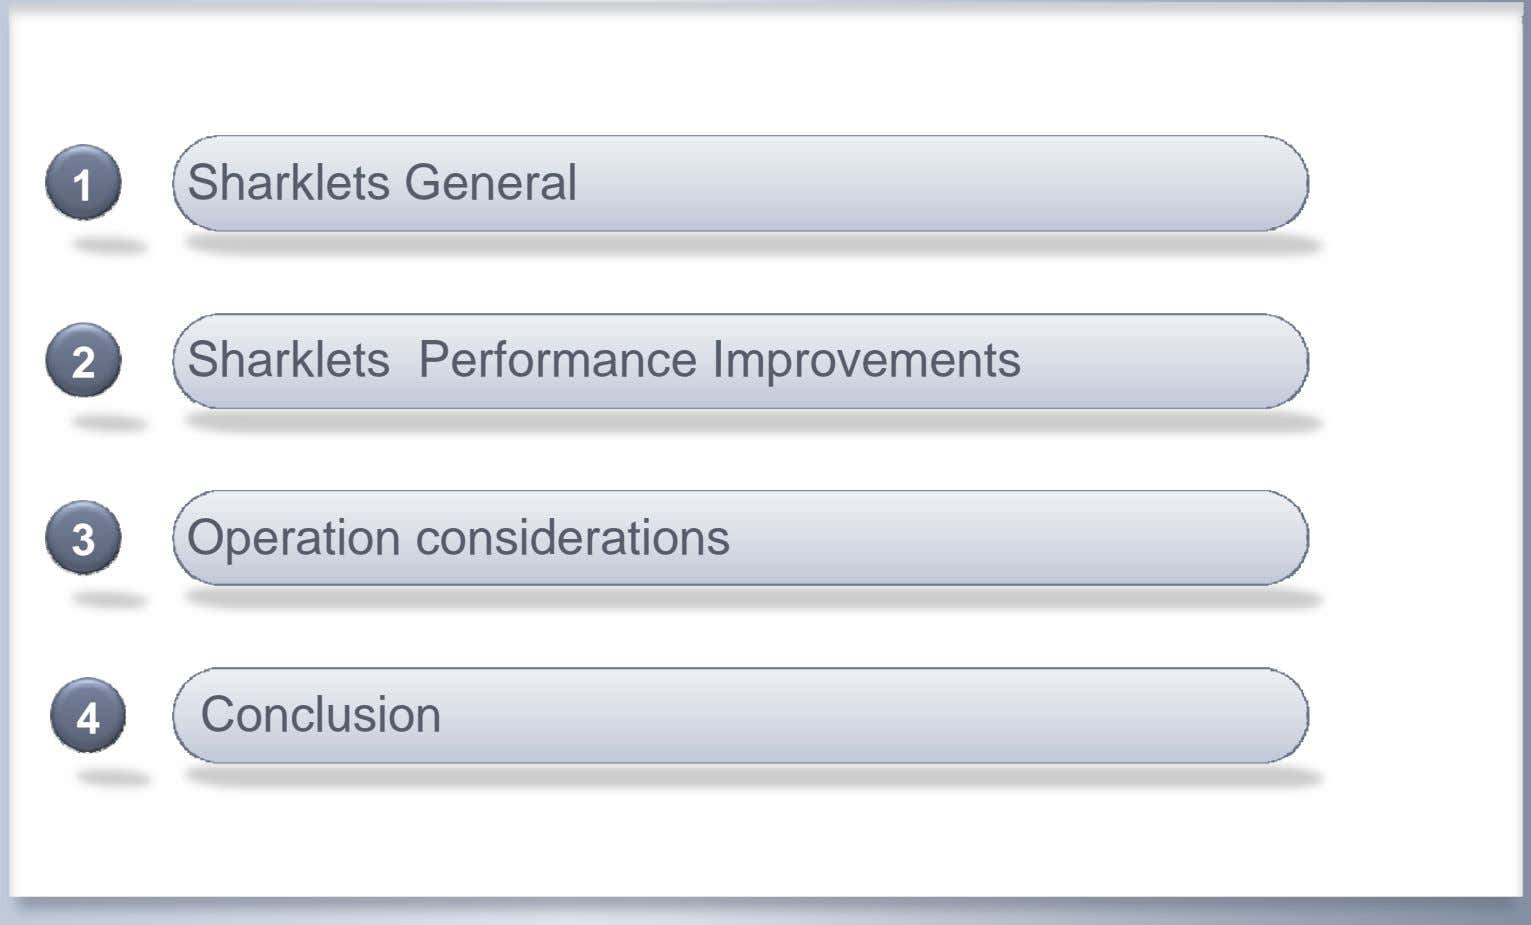 1 Sharklets General 2 Sharklets Performance Improvements 3 Operation considerations 4 Conclusion